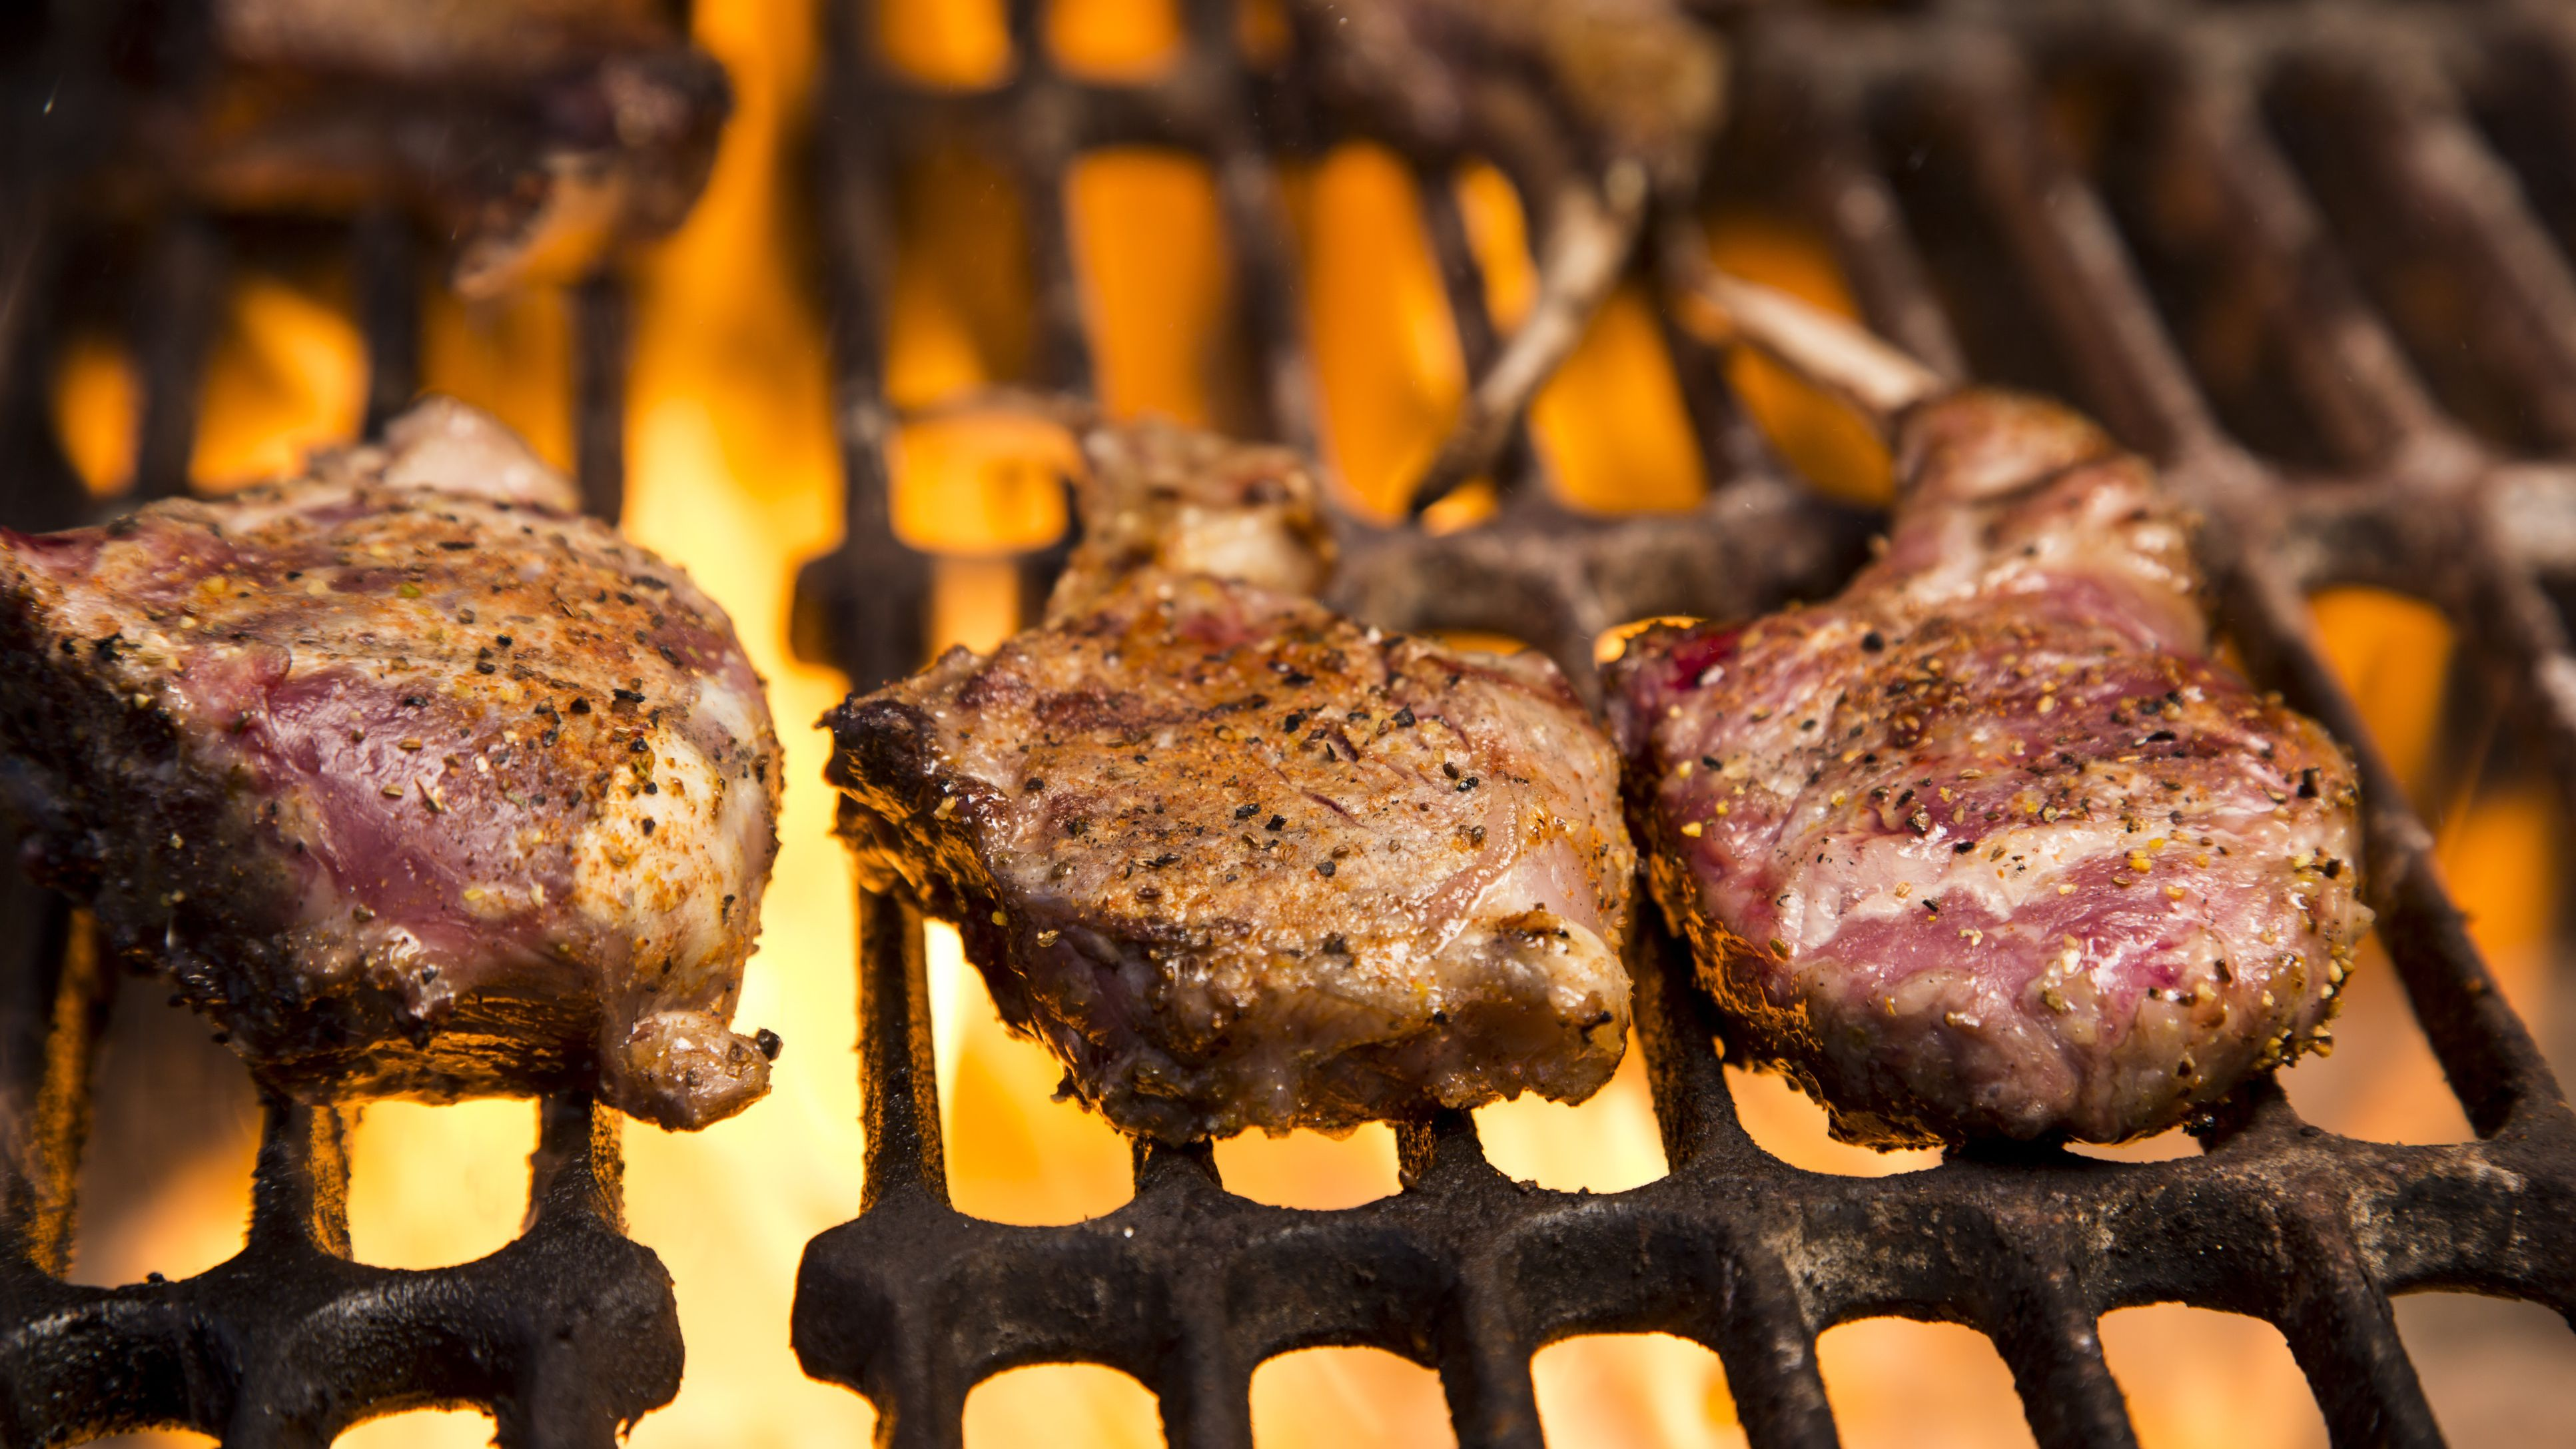 lamb chops on grill how long Moroccan Grilled Lamb Chops With Garlic, Mint and Spices